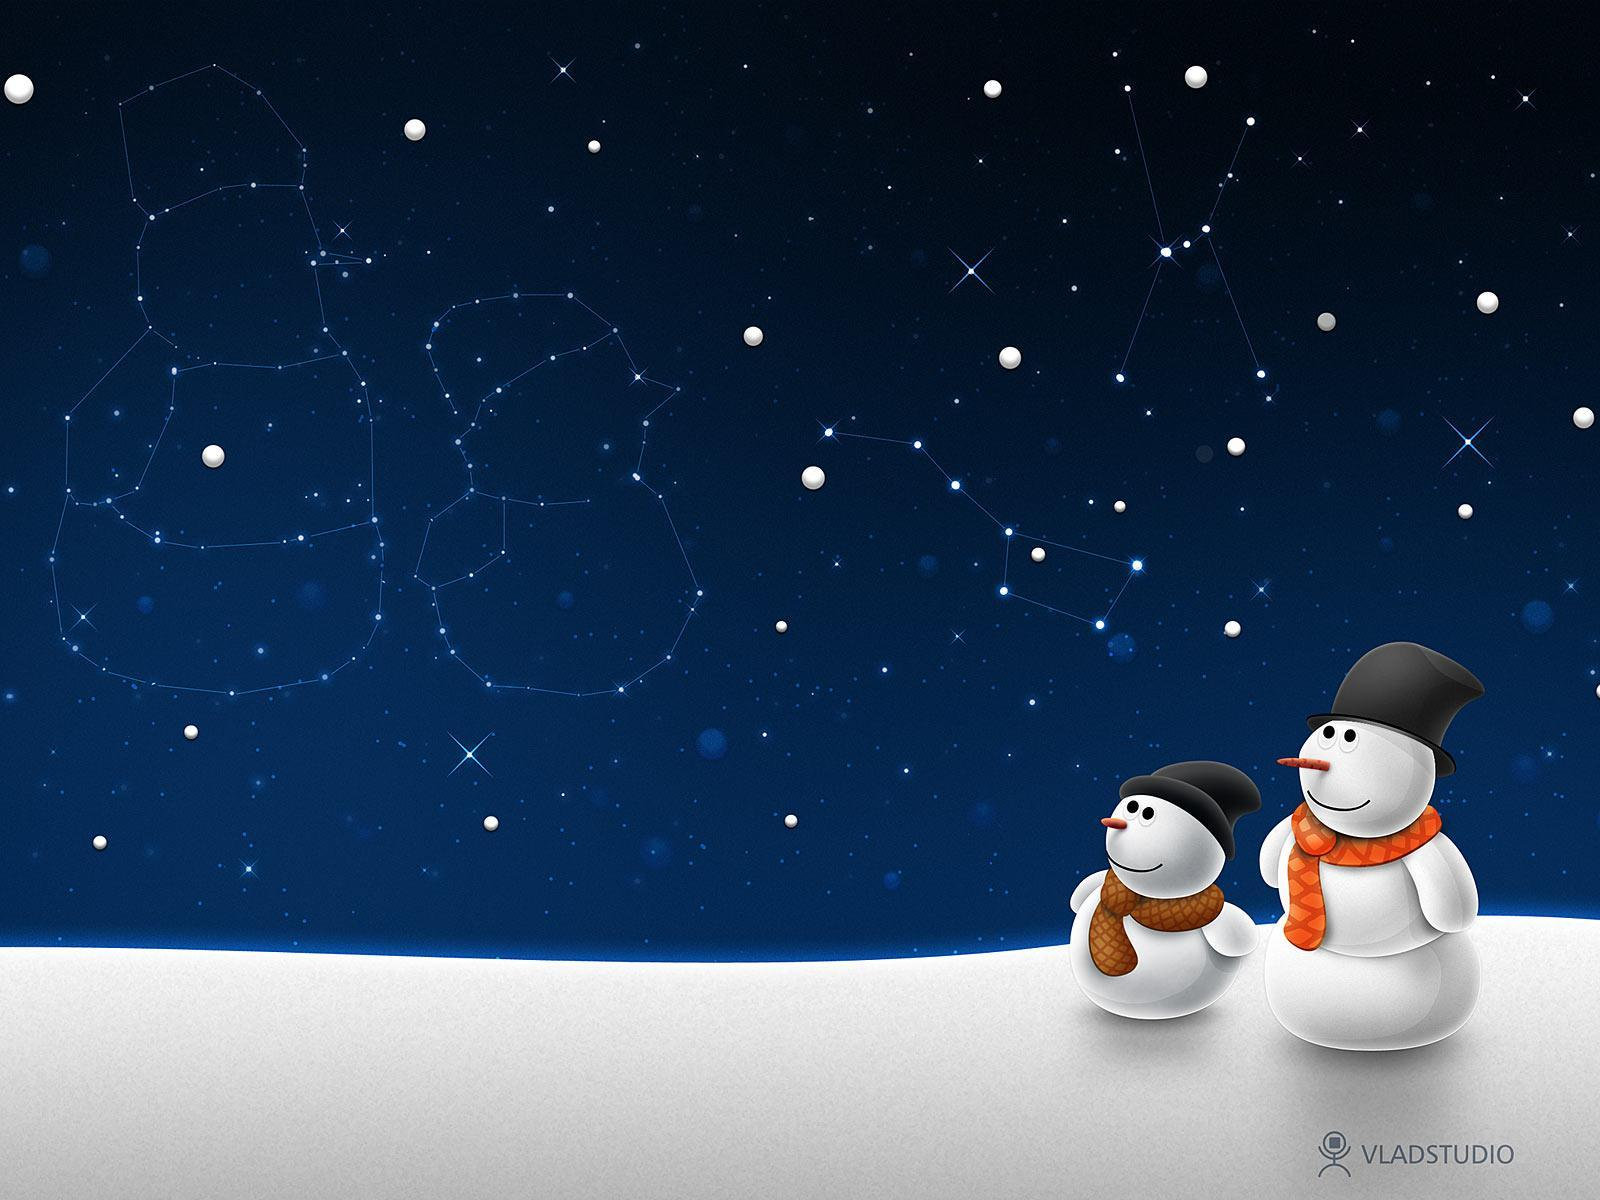 Free Holiday Backgrounds For Desktop - Wallpaper Cave